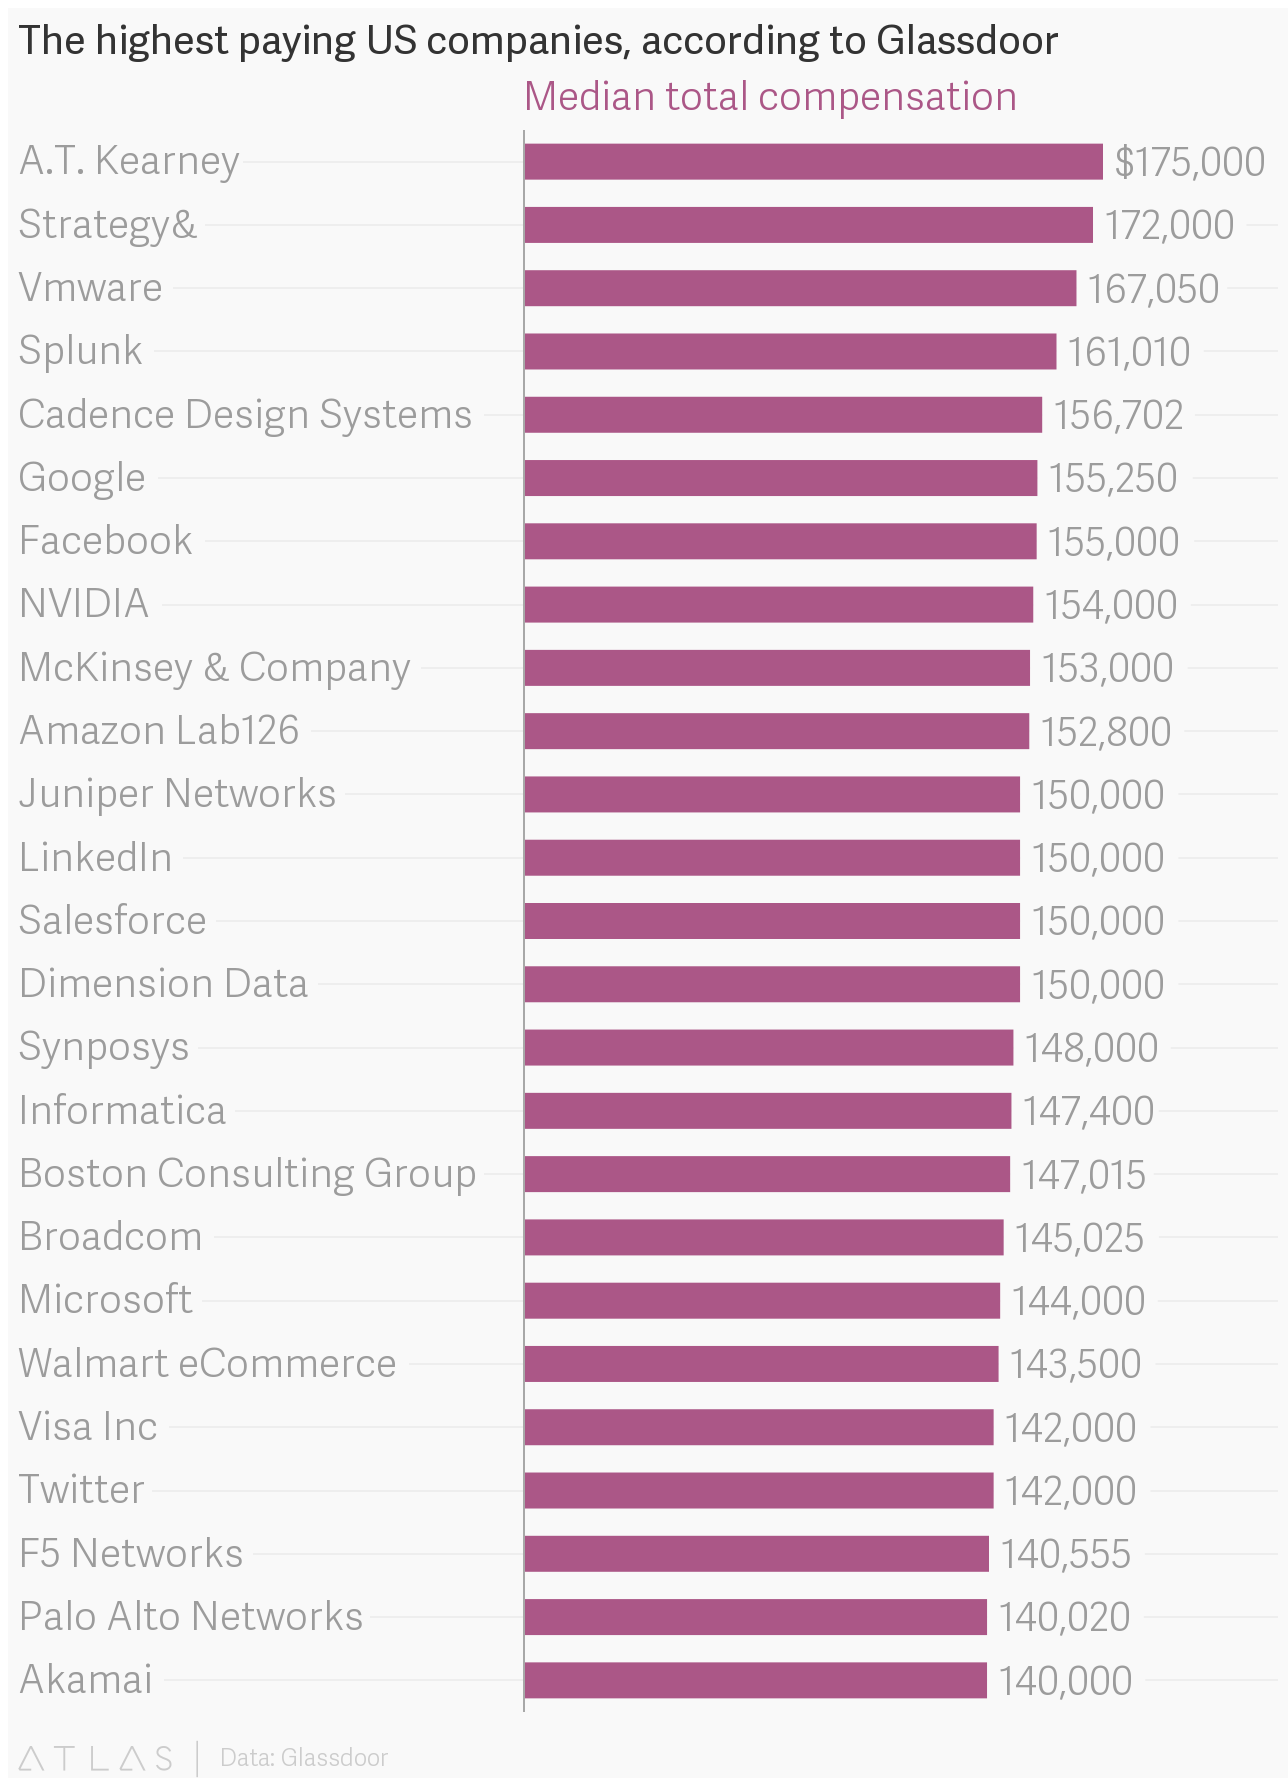 The highest paying US companies, according to Glassdoor